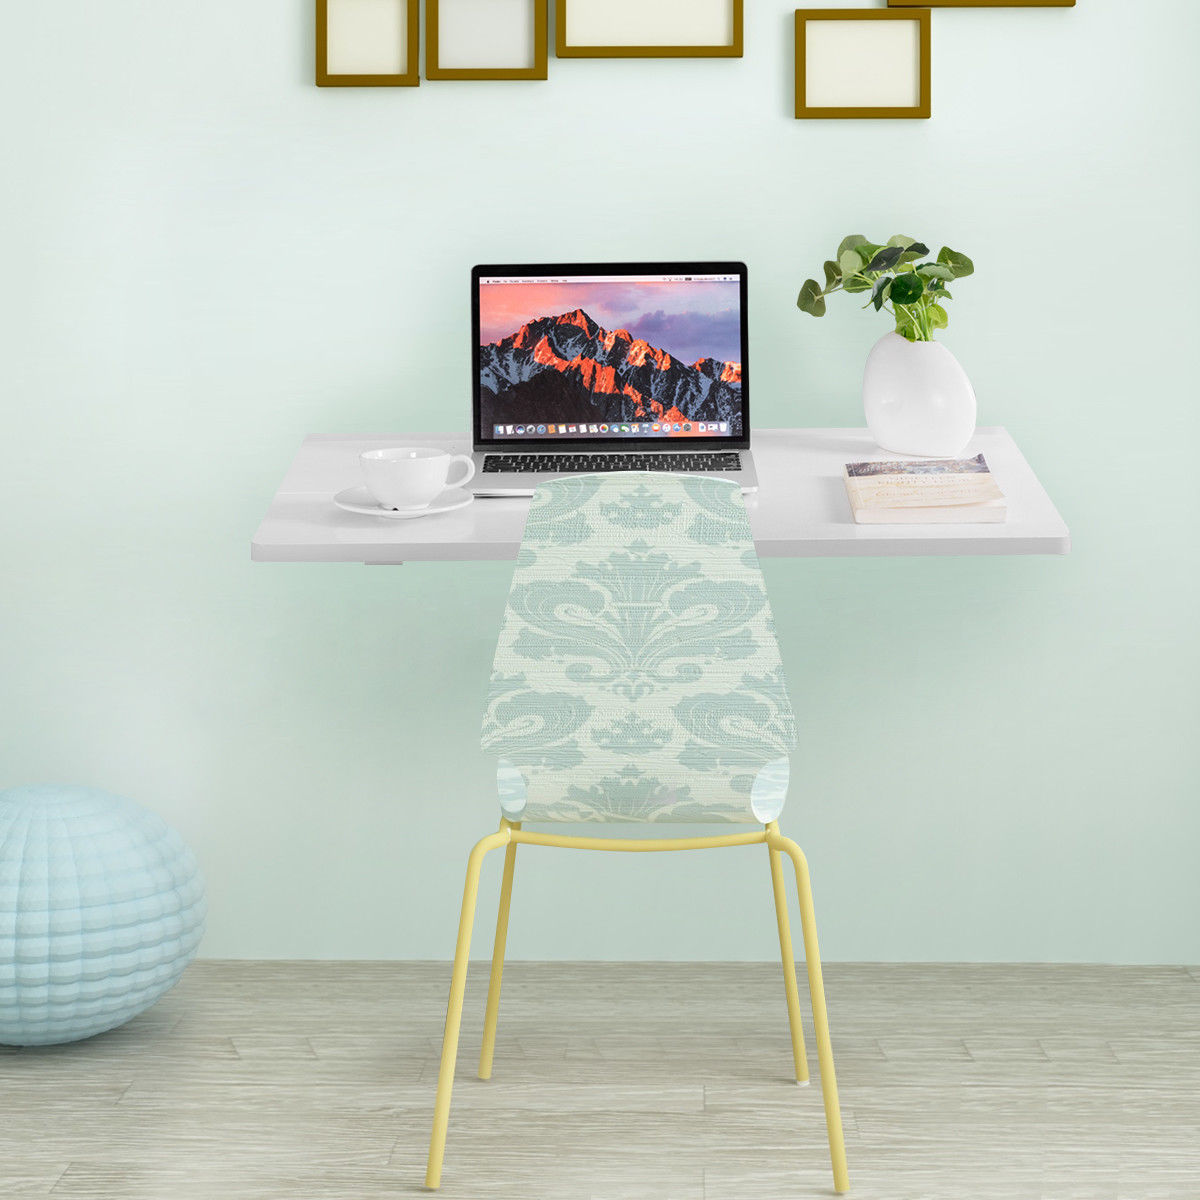 Gymax Wall-Mounted Drop-Leaf Table